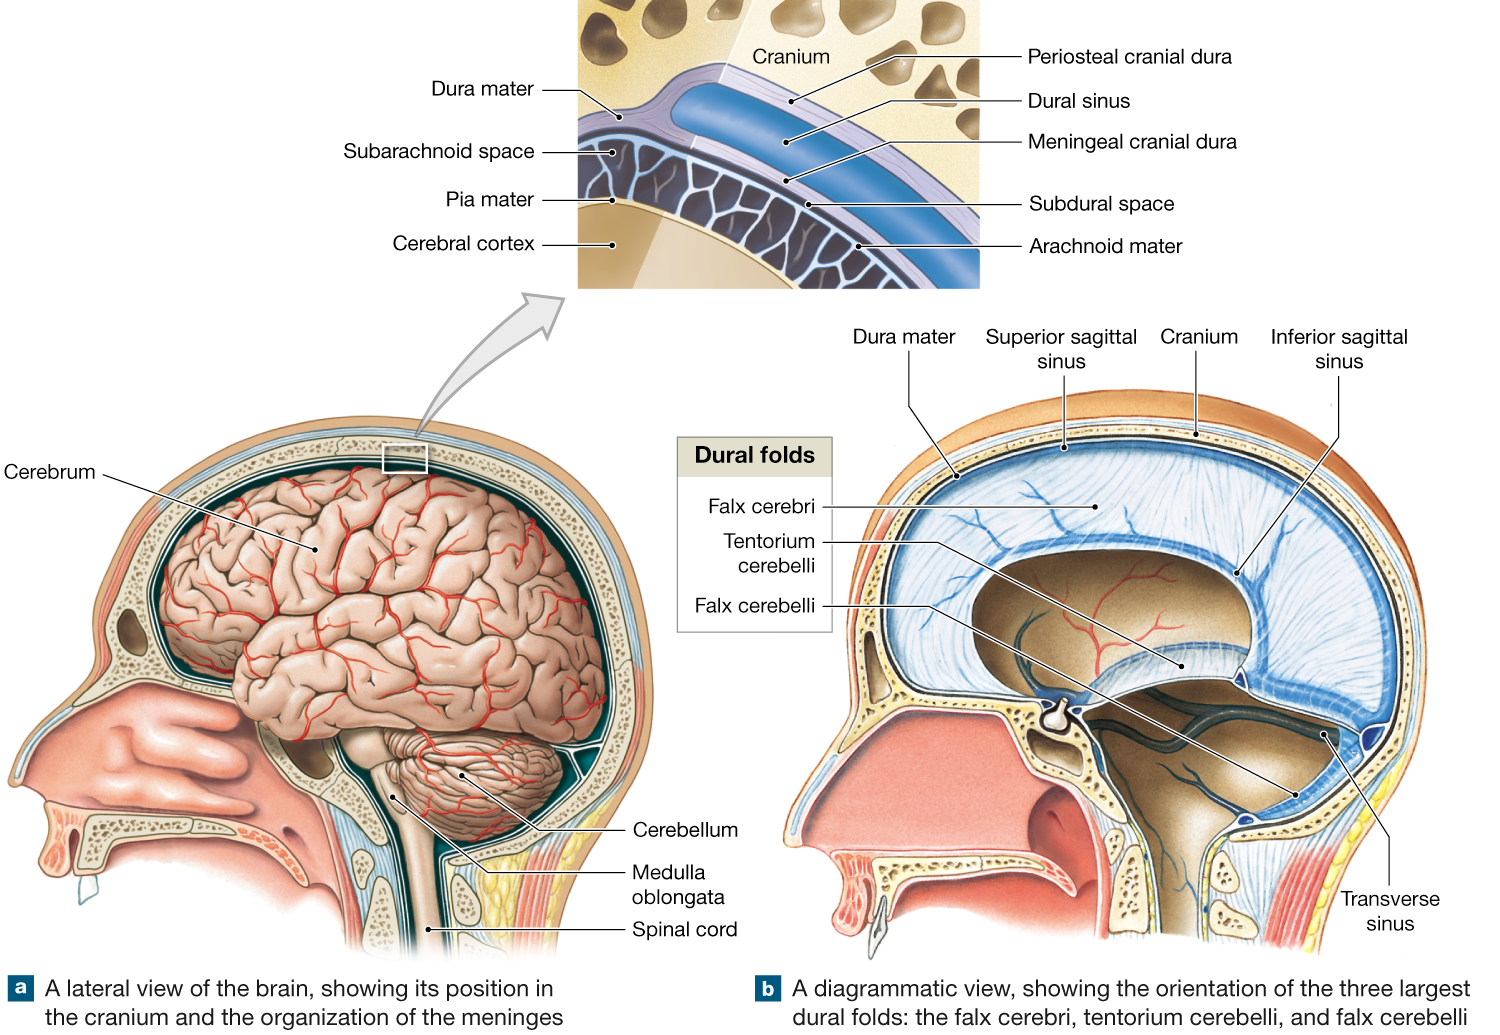 14.2: The brain is protected and supported by the cranial meninges ...